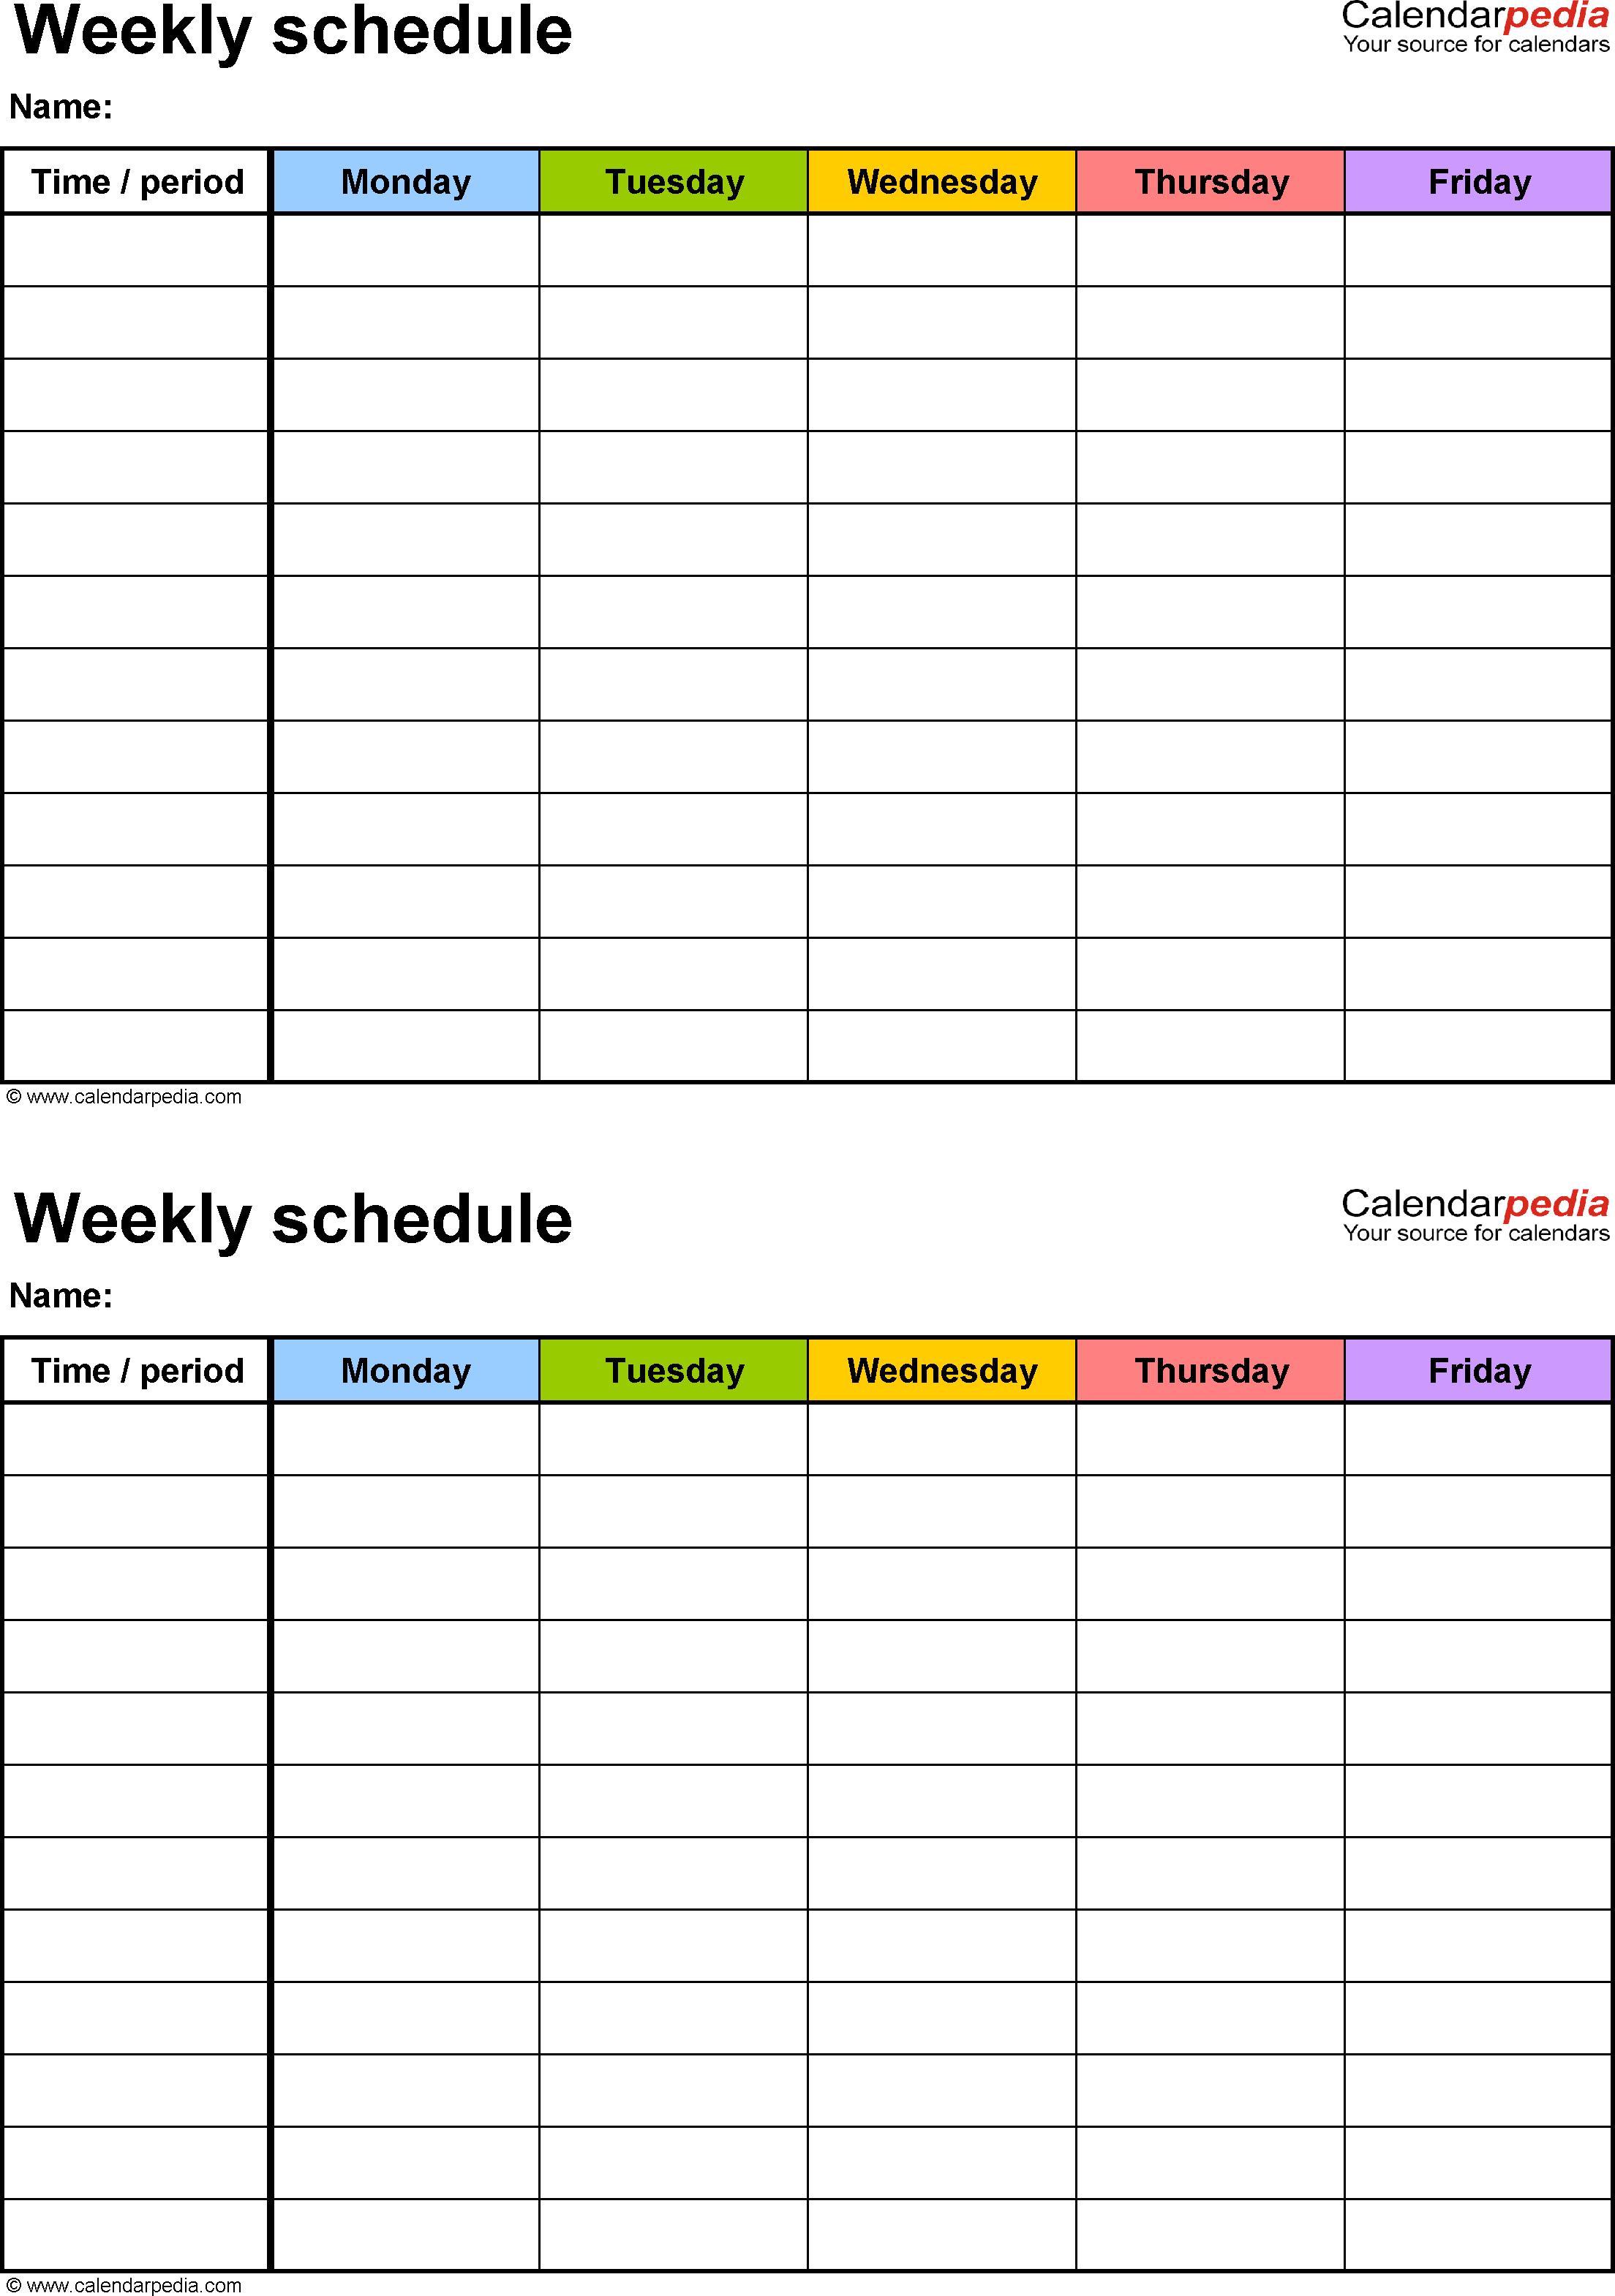 Free Weekly Schedule Templates For Excel - 18 Templates regarding Excel Calendar Template Bill Pay